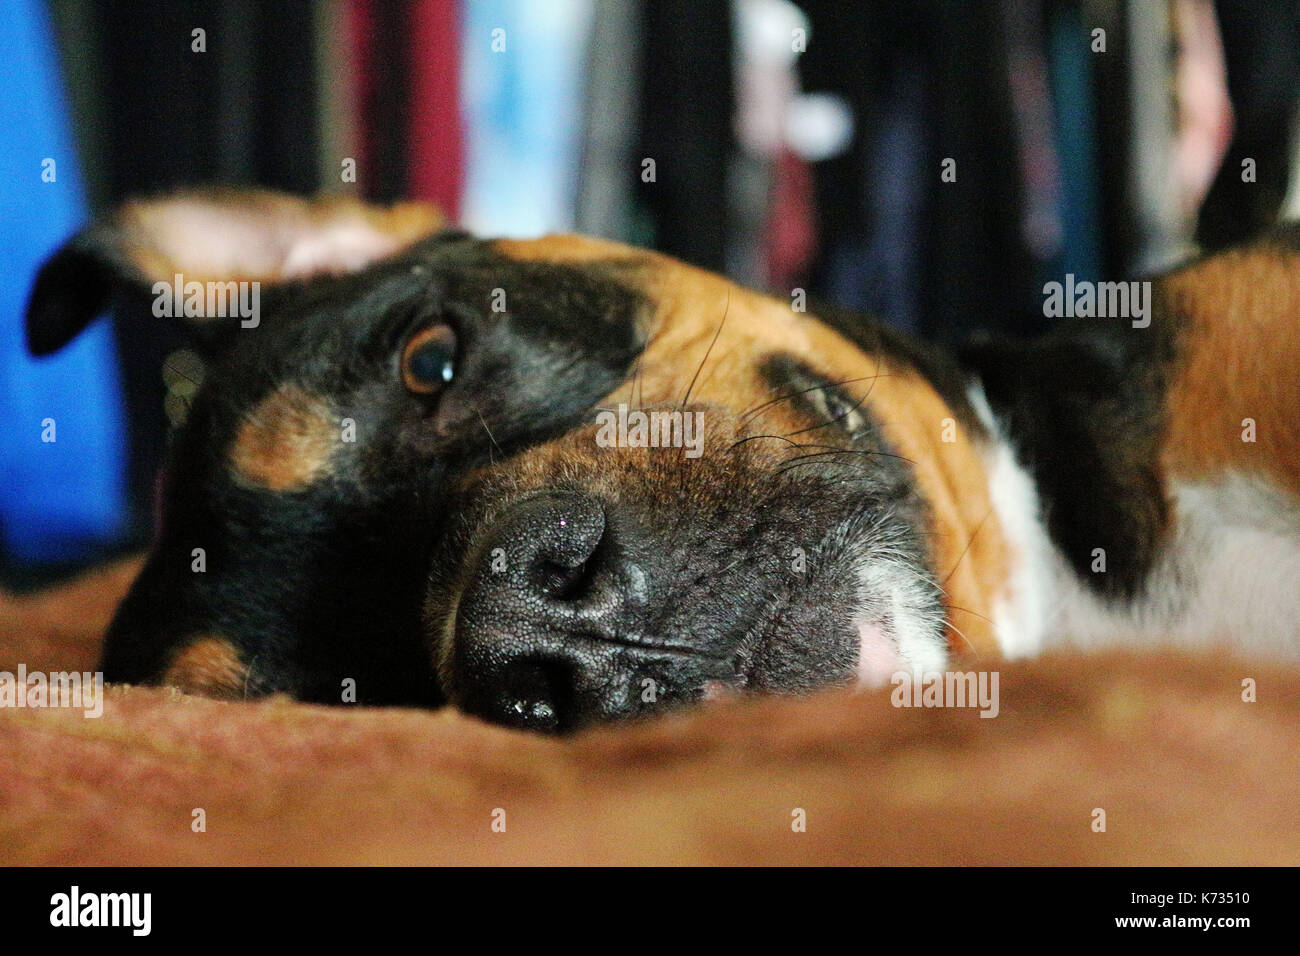 A Face Shot Of A Rottweiler Pit Bull Mix Breed Dog Laying On His